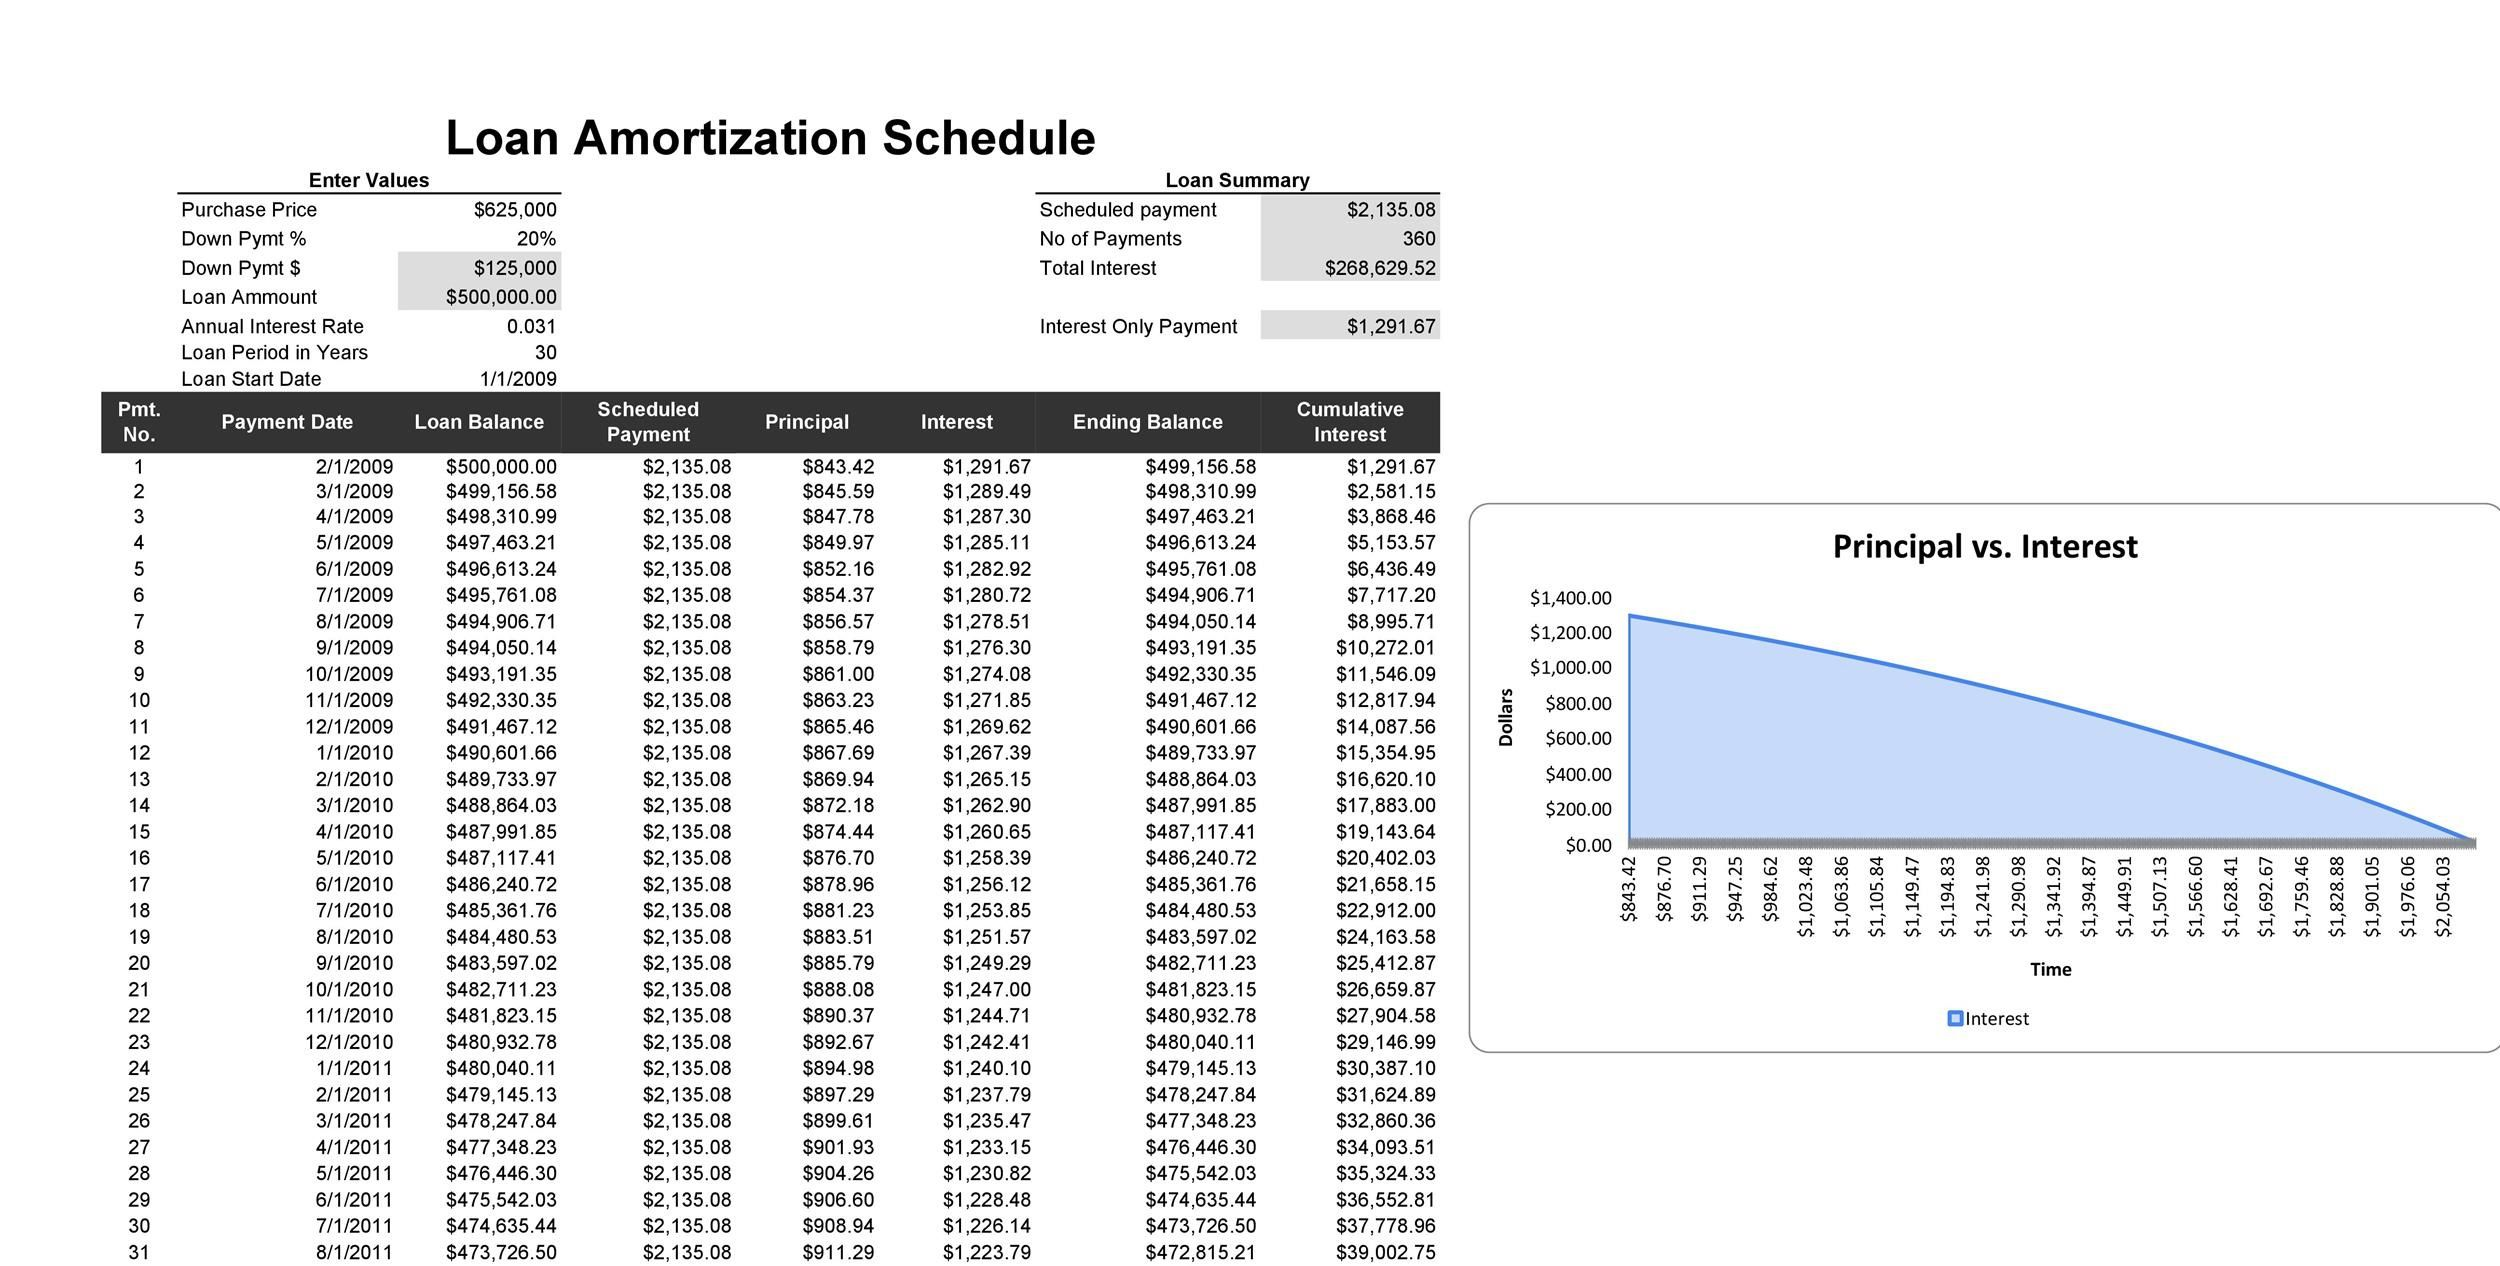 009 Phenomenal Loan Amortization Template Excel High Definition  Schedule Free 2010Full